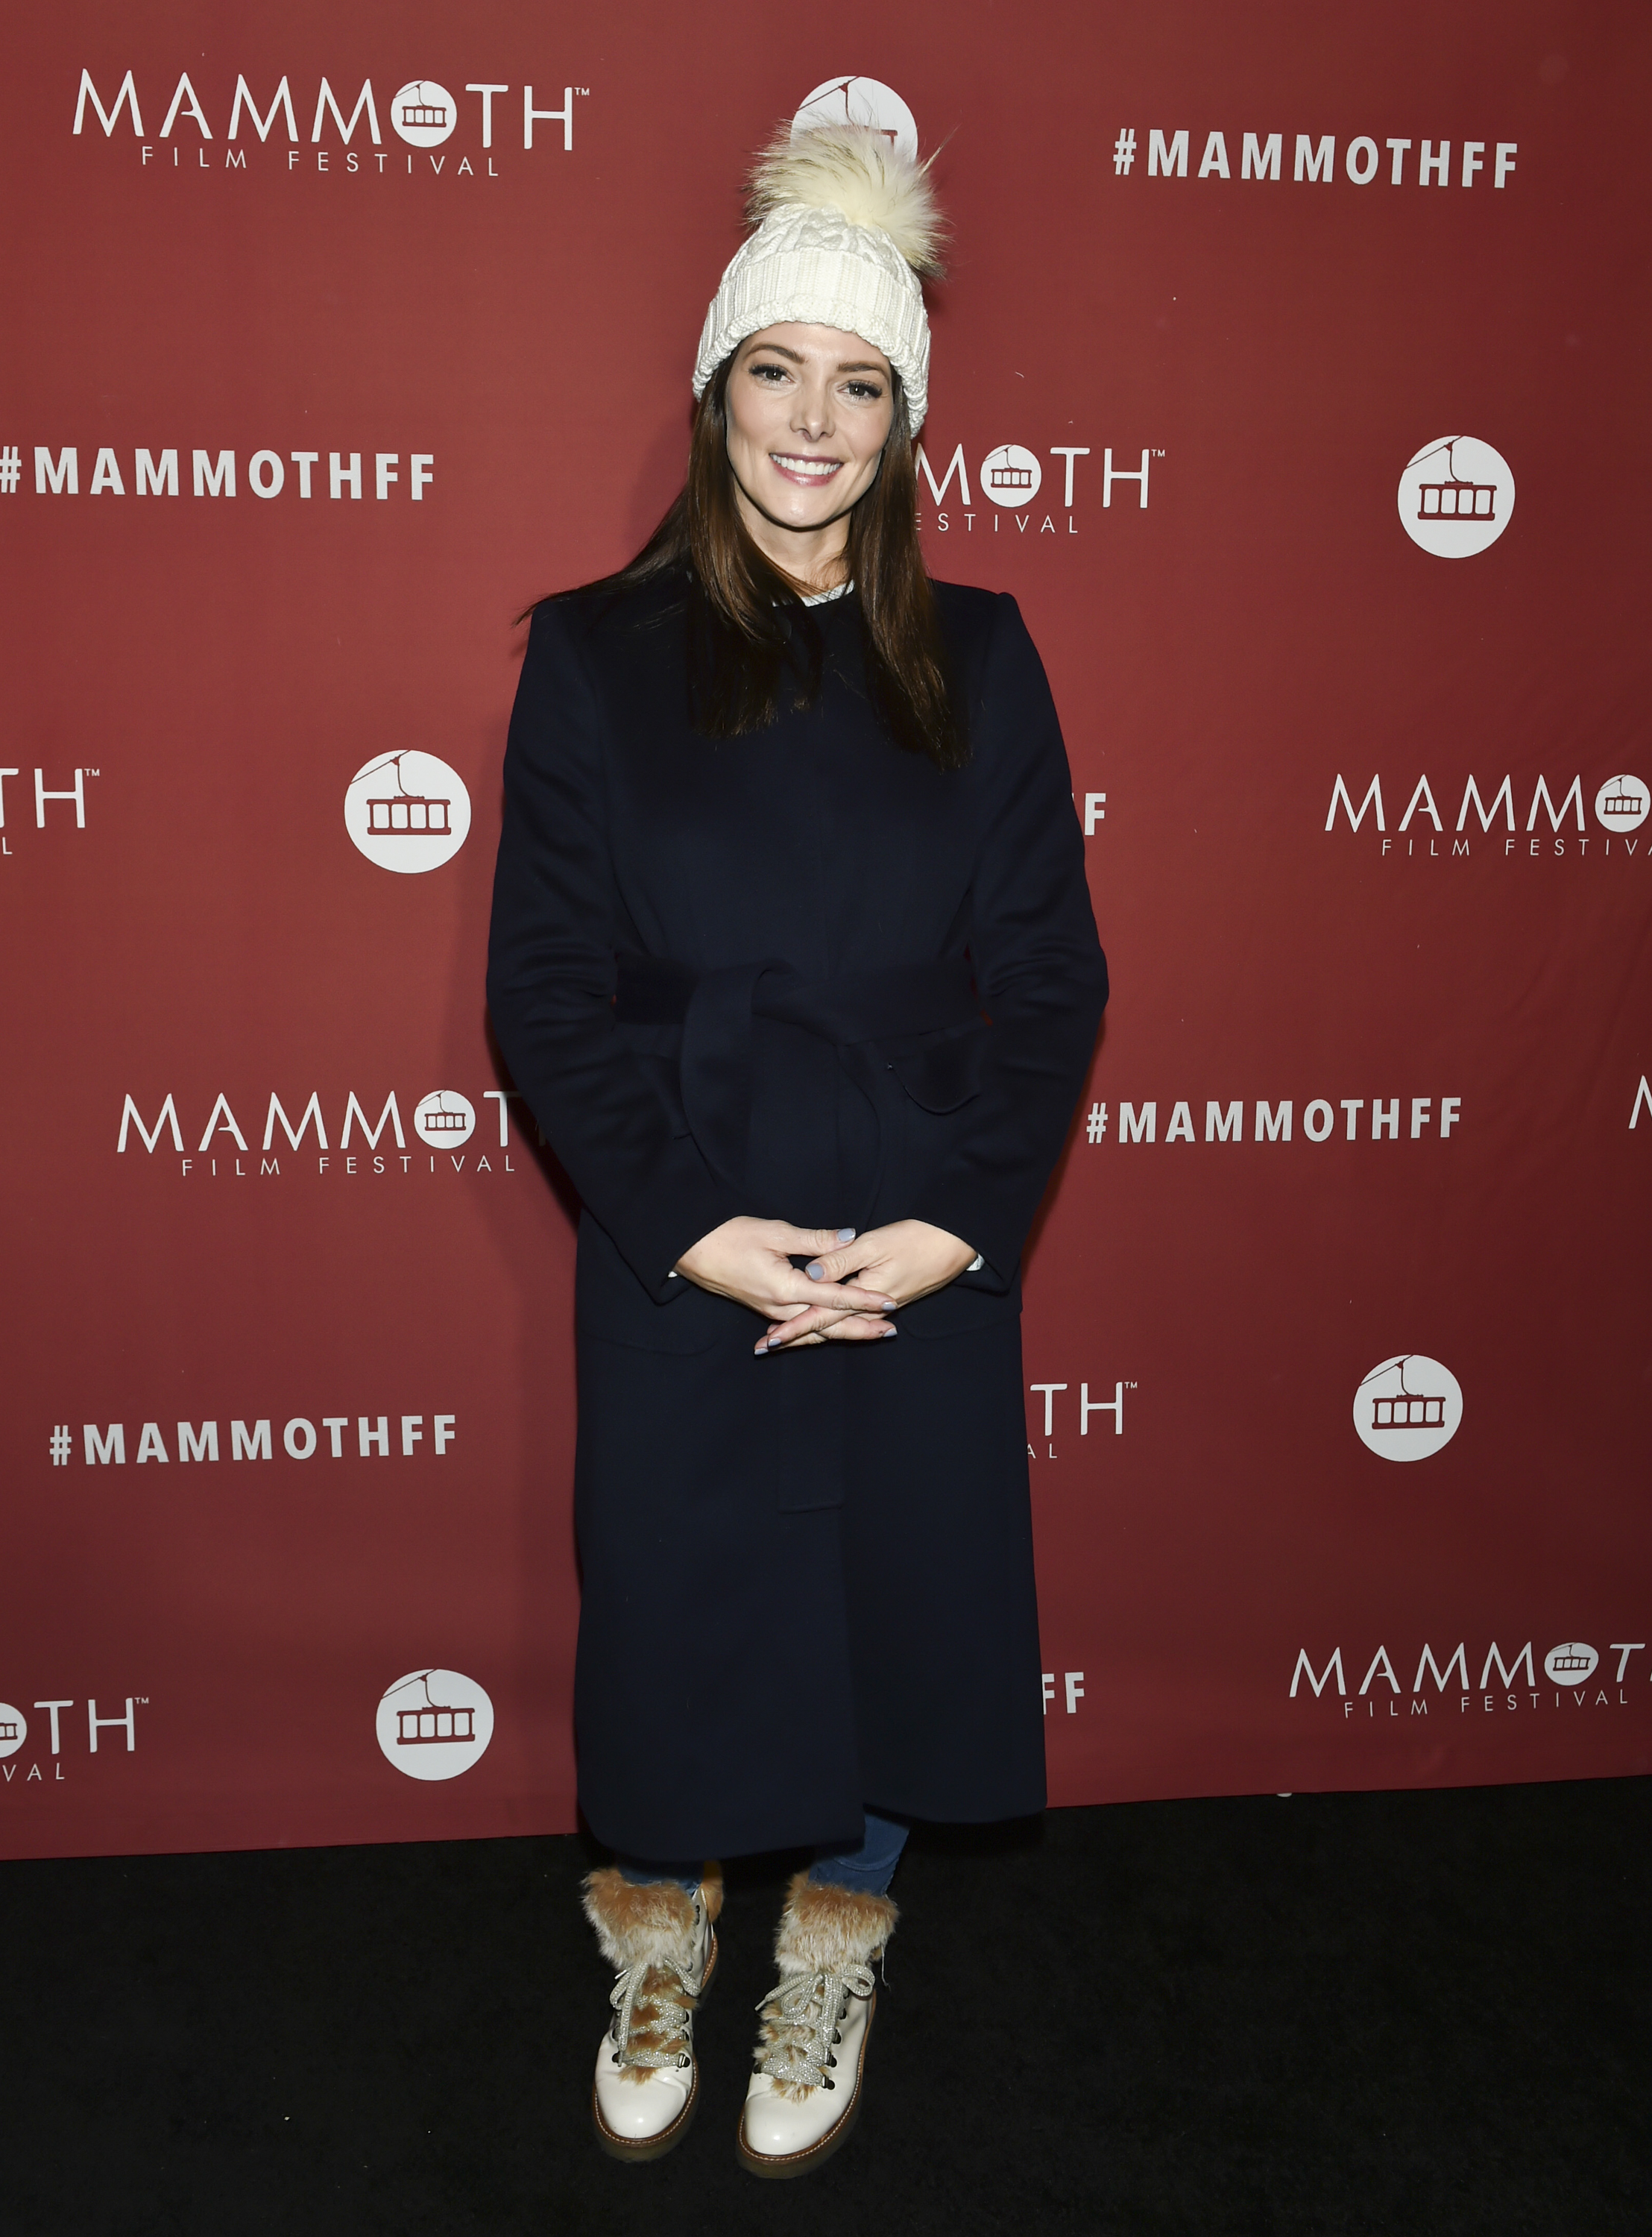 """Ashley Greene attends the Mammoth Film Festival premiere of """"Buddy Games"""" in Mammoth Lakes, California, on Feb. 10, 2019."""